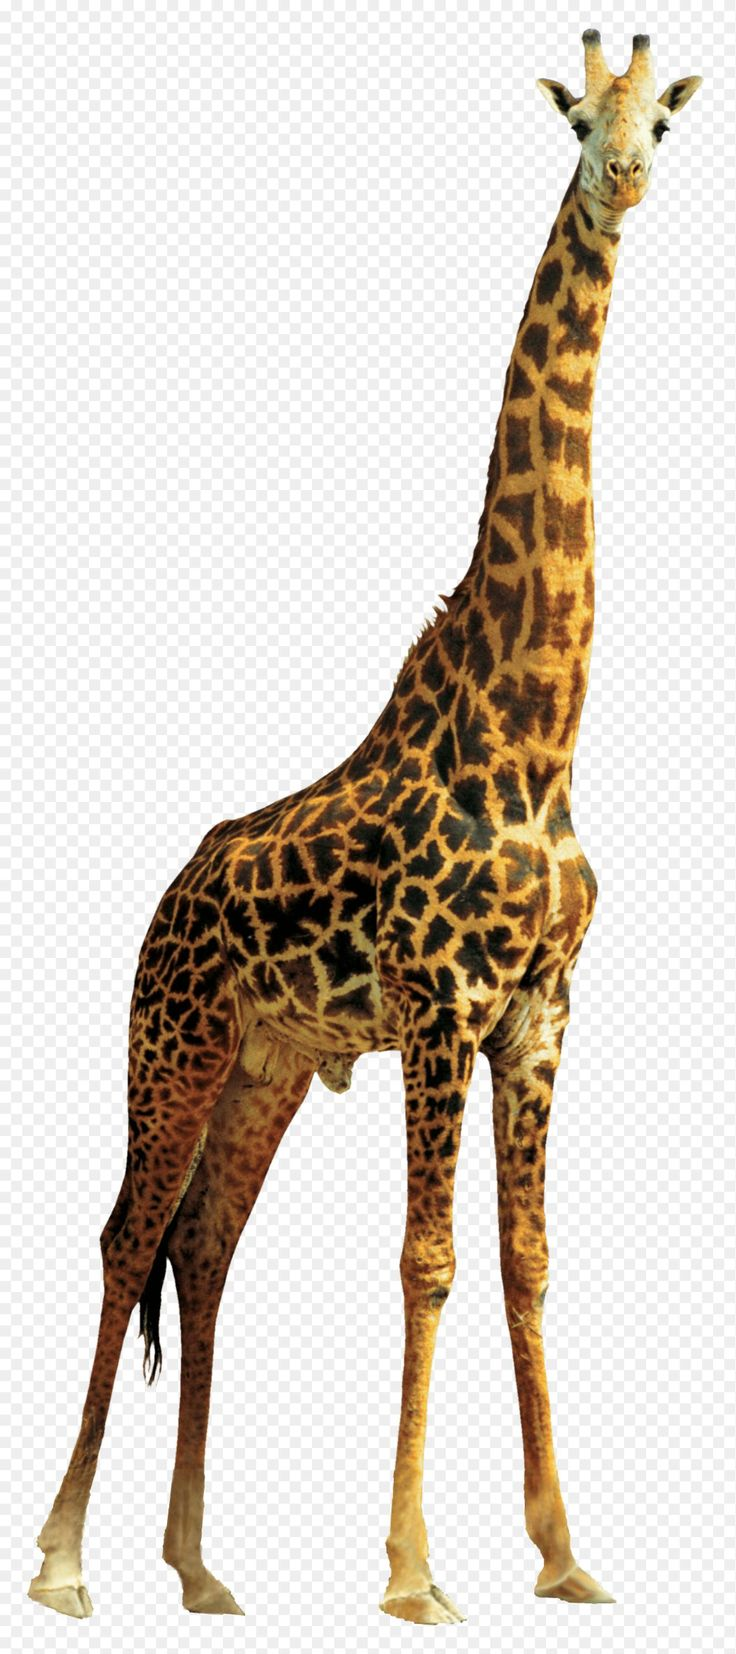 Giraffe Png Giraffe Png Transparent Images Png All 1321 2970 Png Download Free Transparent Background Giraffe Png Giraffe Images Giraffe Pictures Giraffe